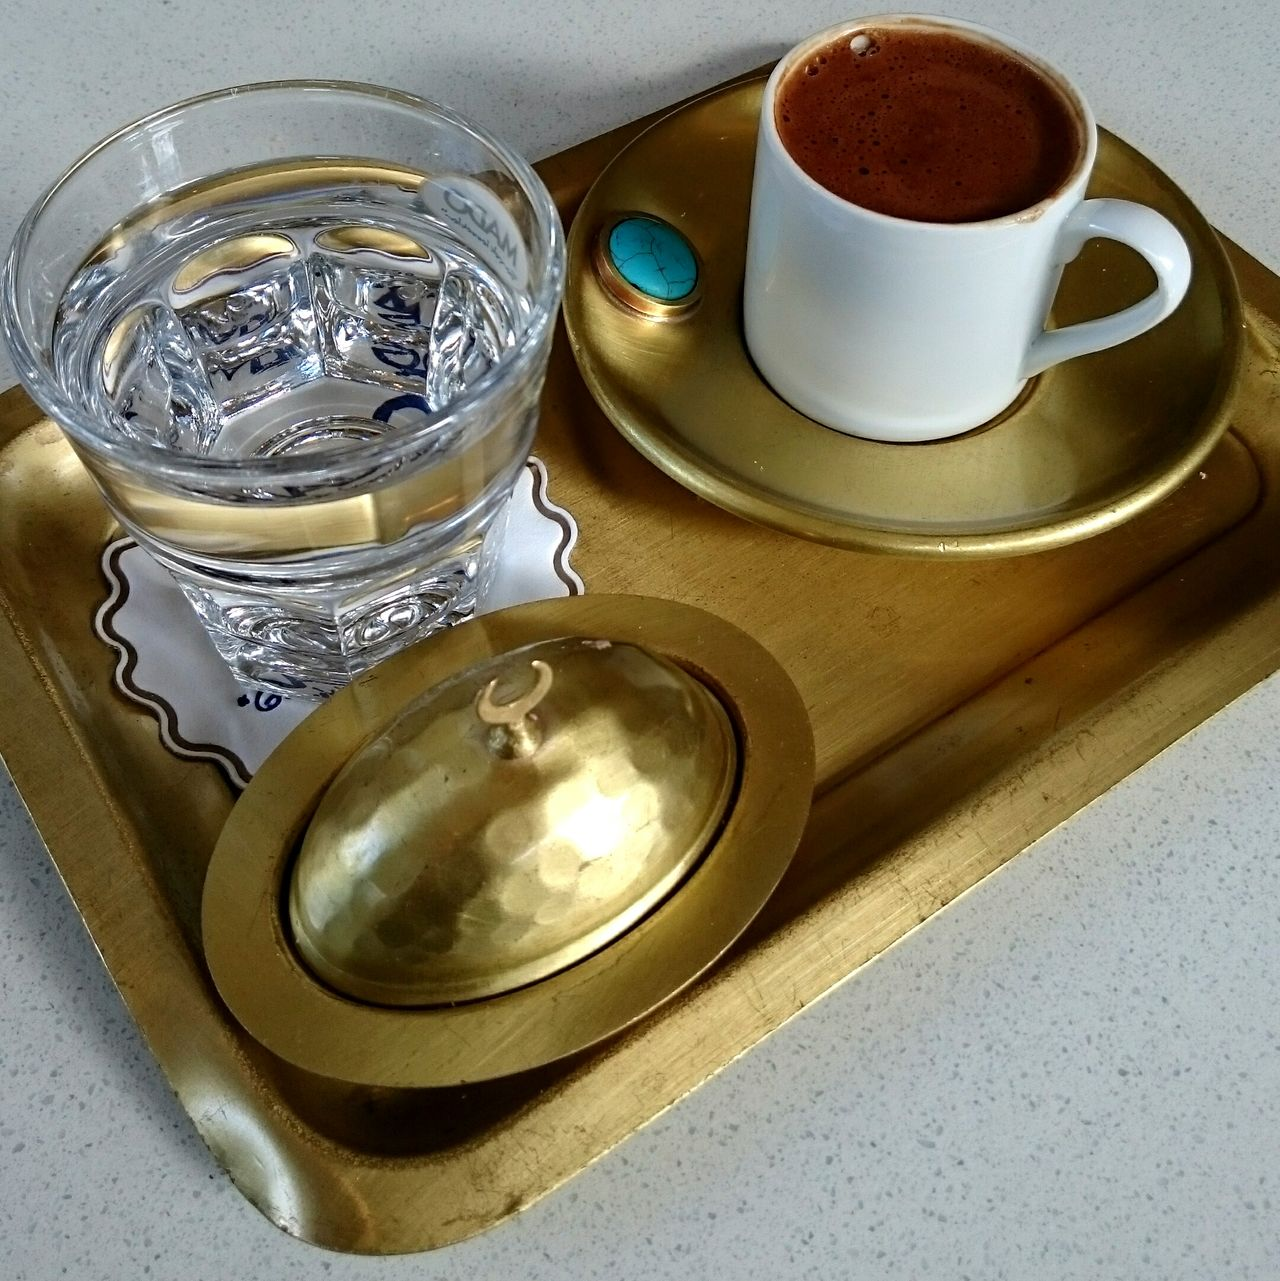 Turkish Coffee Coffee Water Cup Tray Winter2015 After Lunch Drinking Coffee Nofilter Noedit